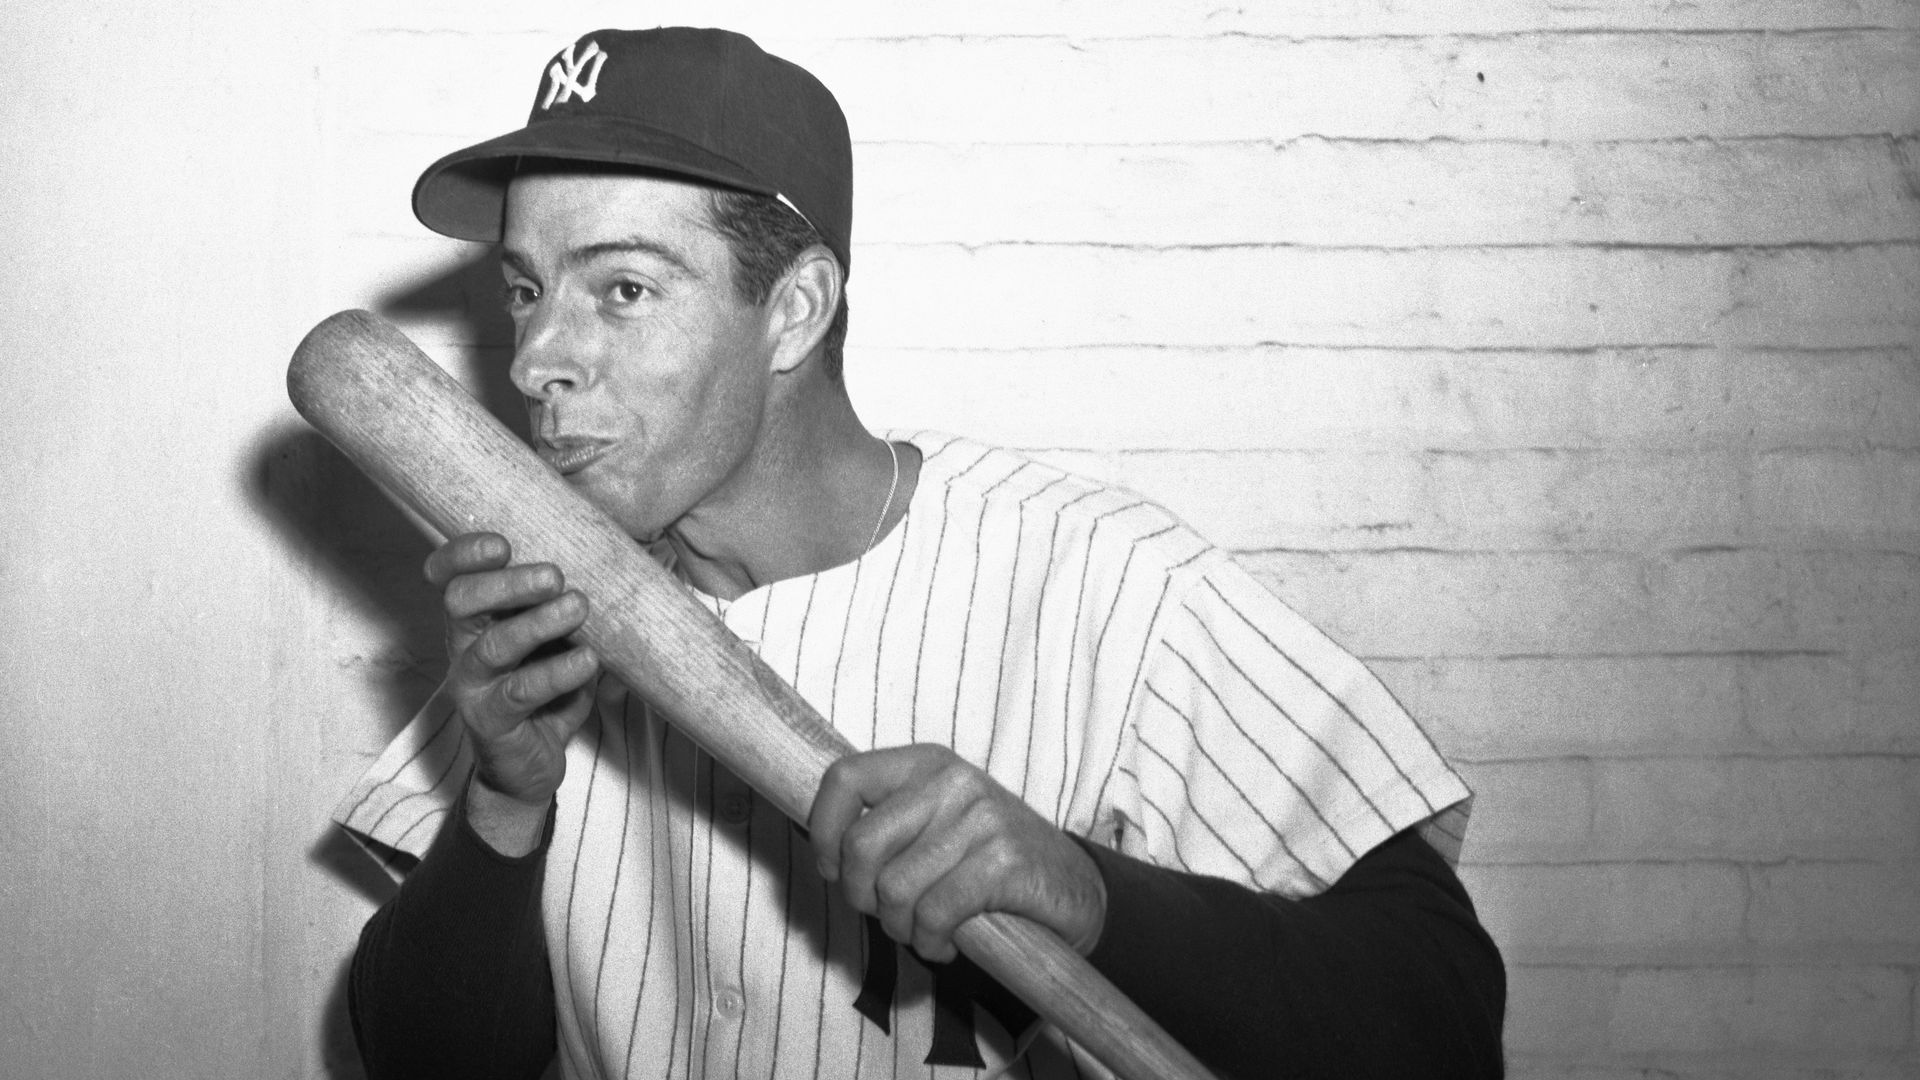 Joe DiMaggio kissing his ash bat